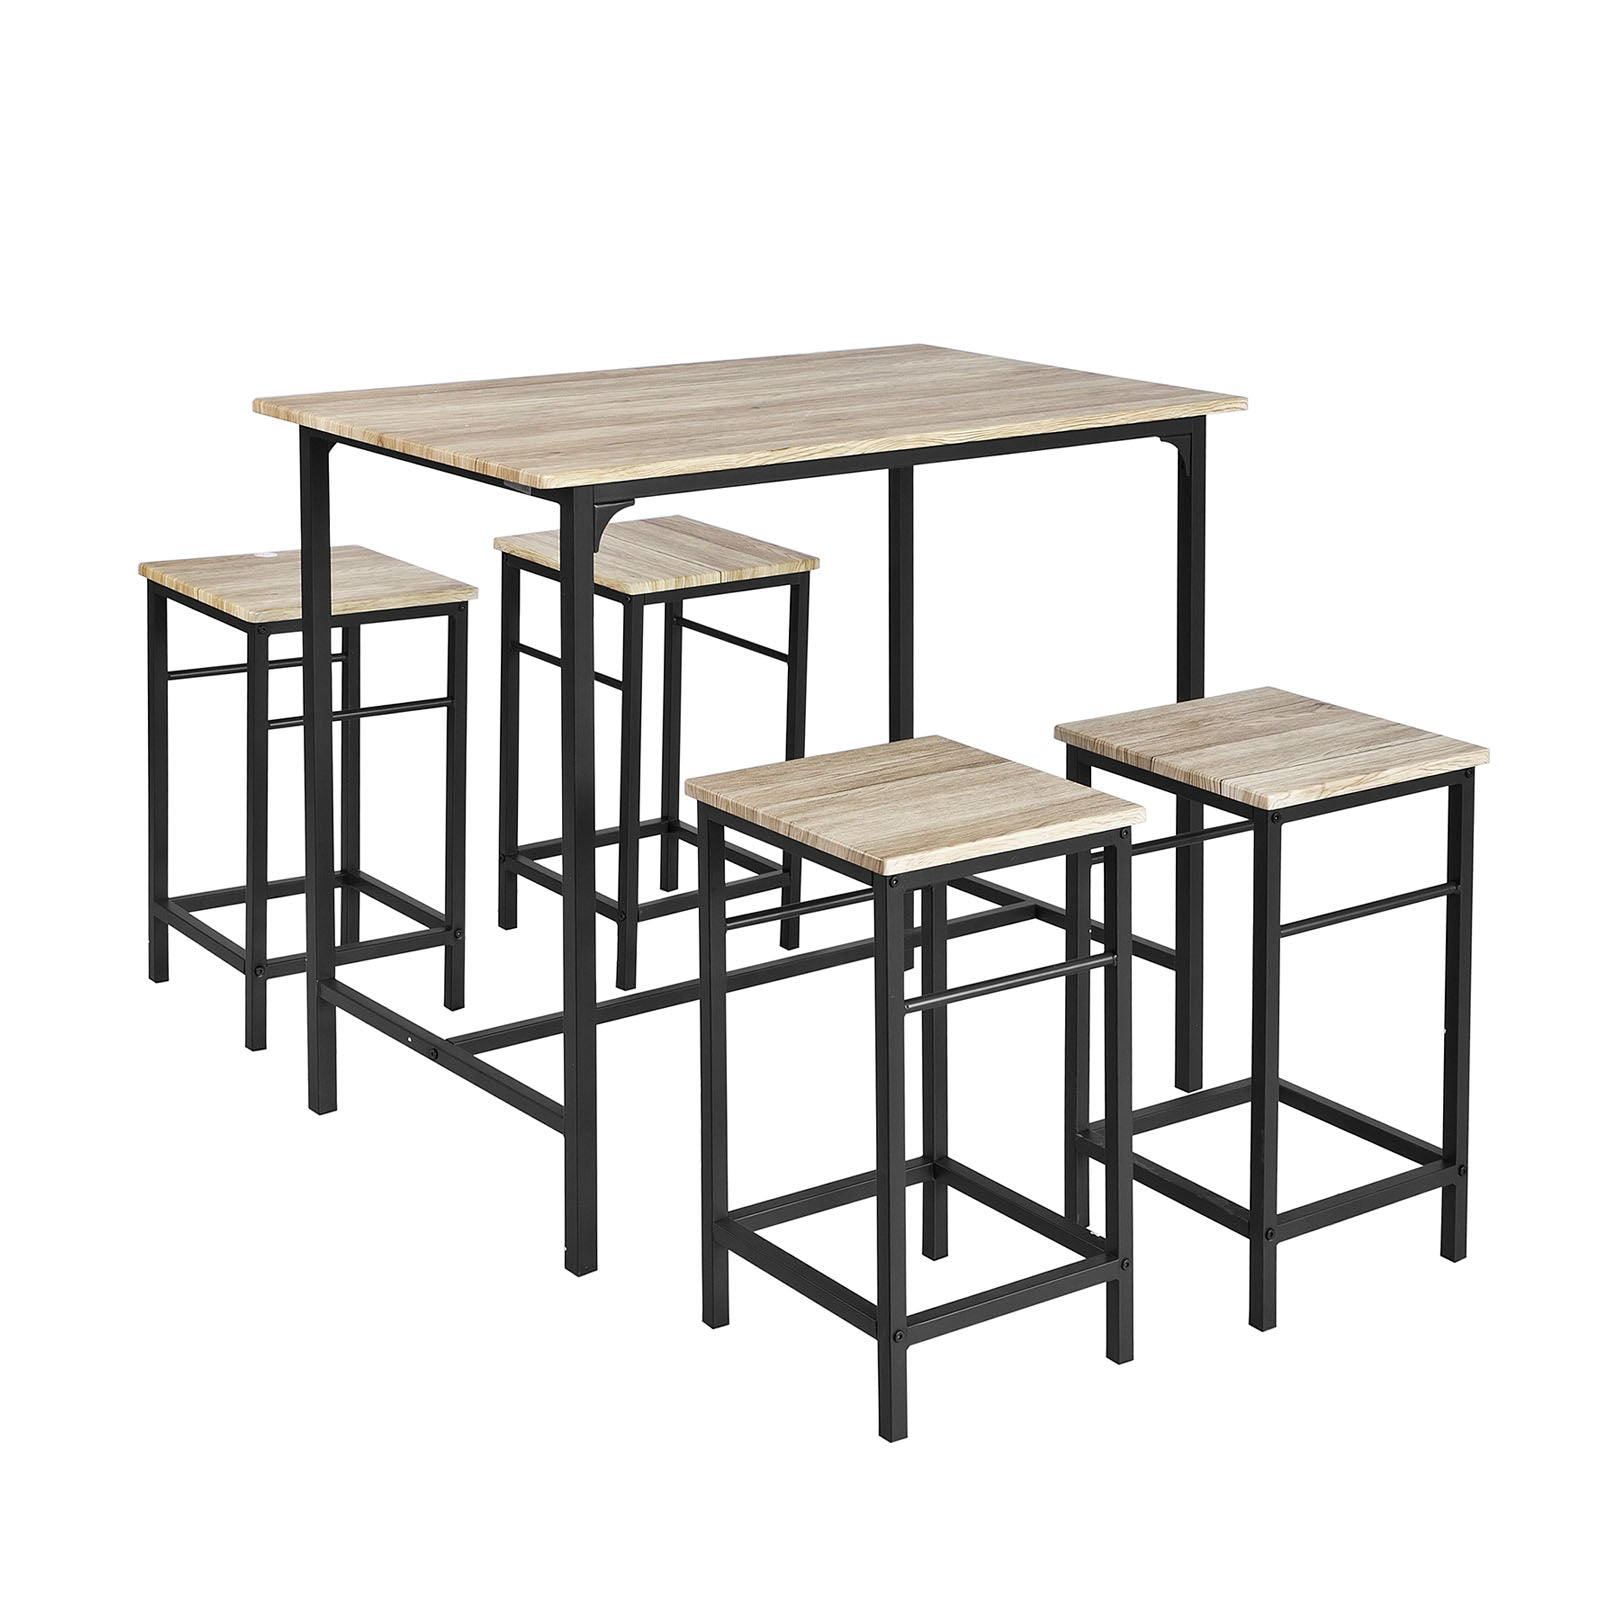 SoBuy Table And Chairs High Table Wooden Kitchen Table With 4 Stools Ogt11-N